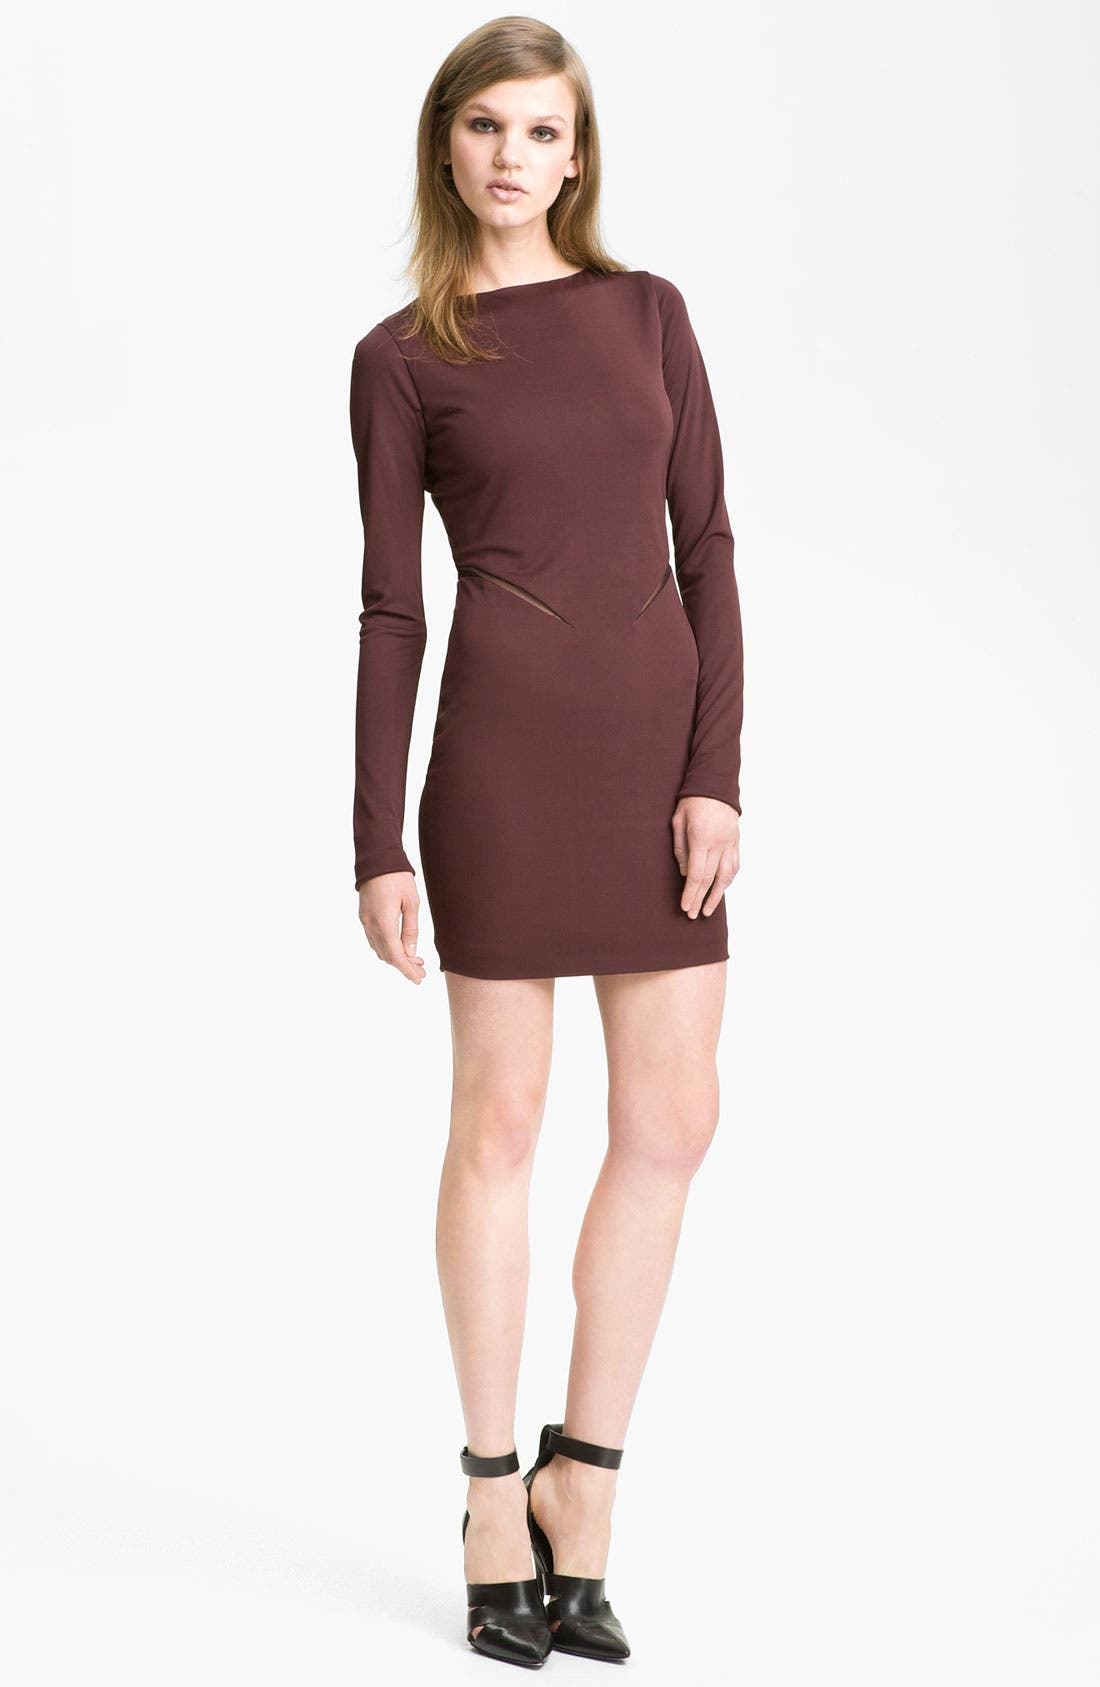 Alternate Image 1 Selected - T by Alexander Wang Mesh Inset Knit Sheath Dress